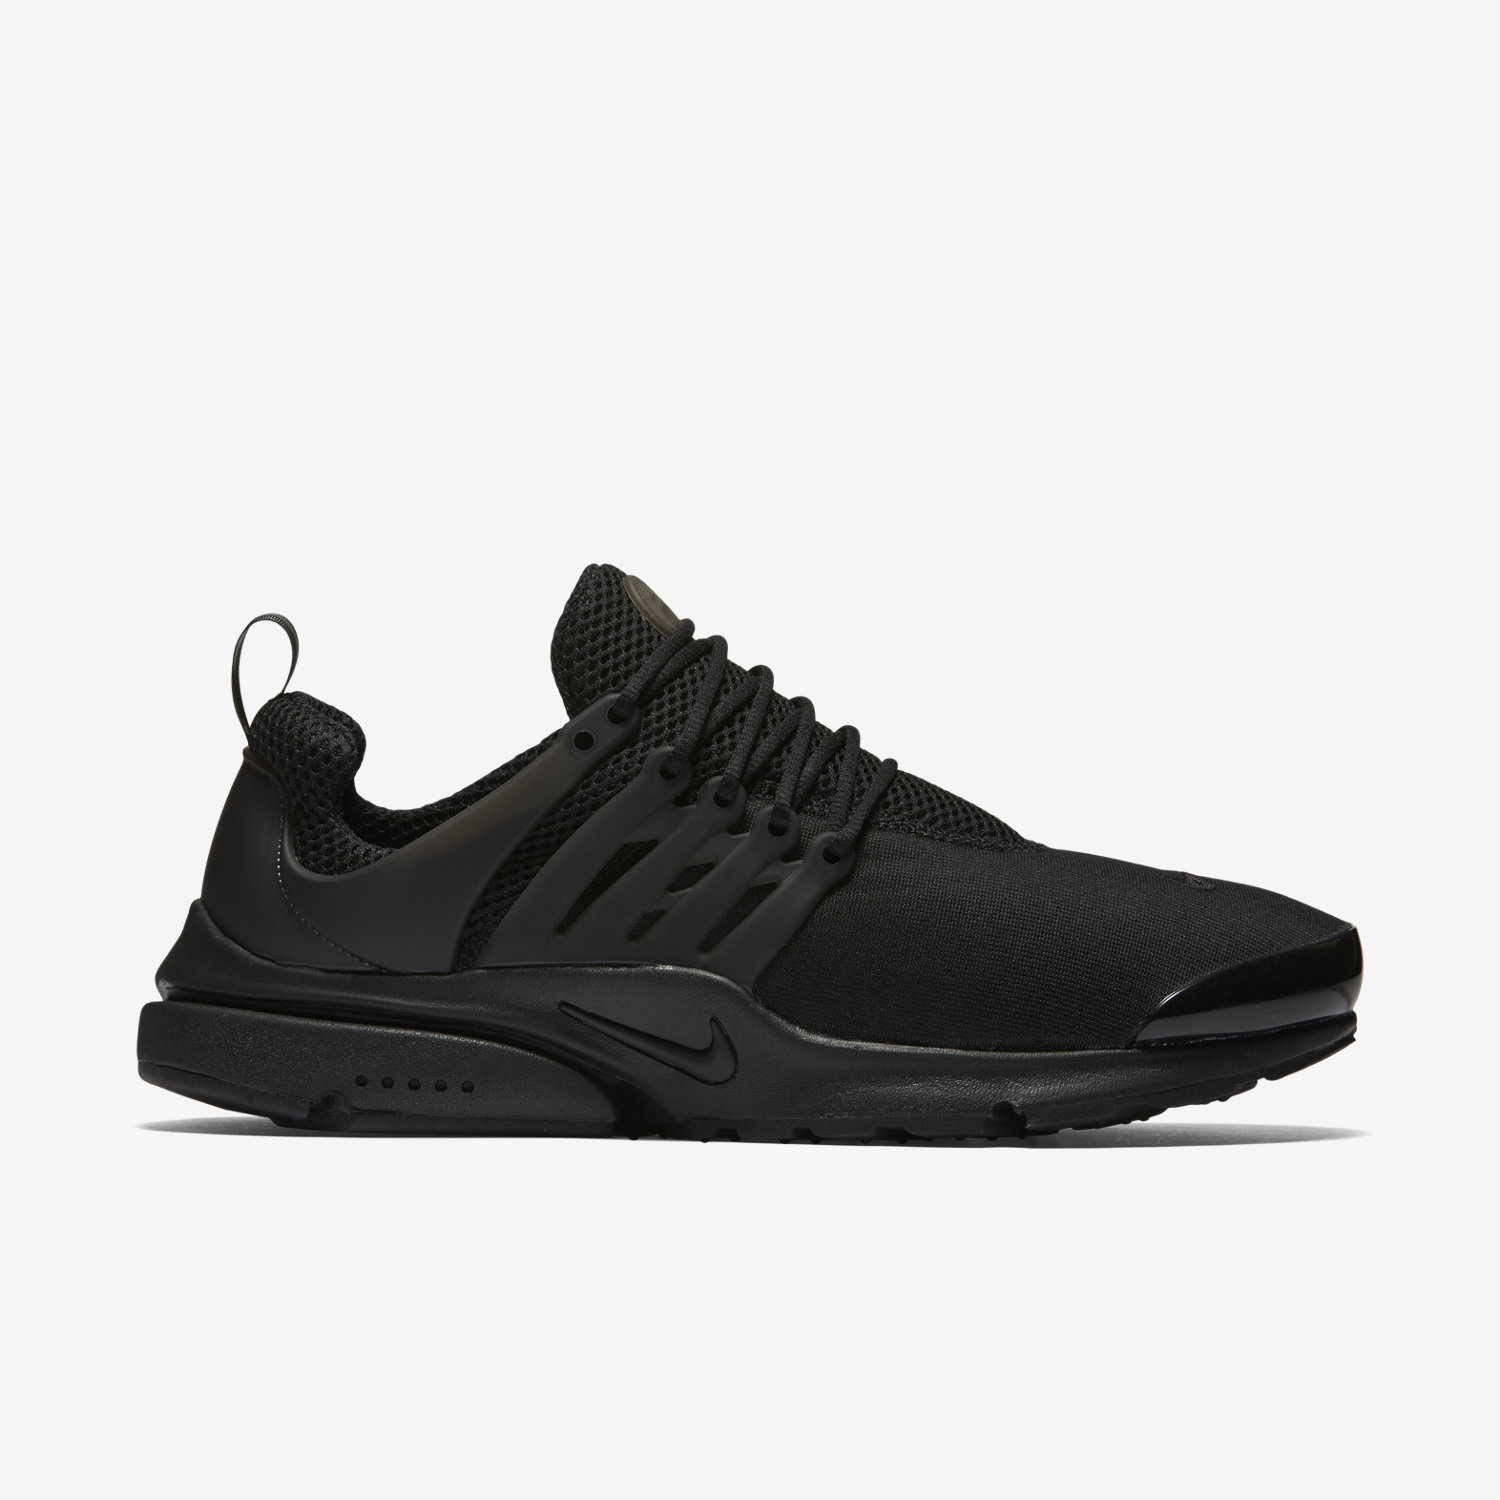 zapatillas nike air presto - Buscar con Google